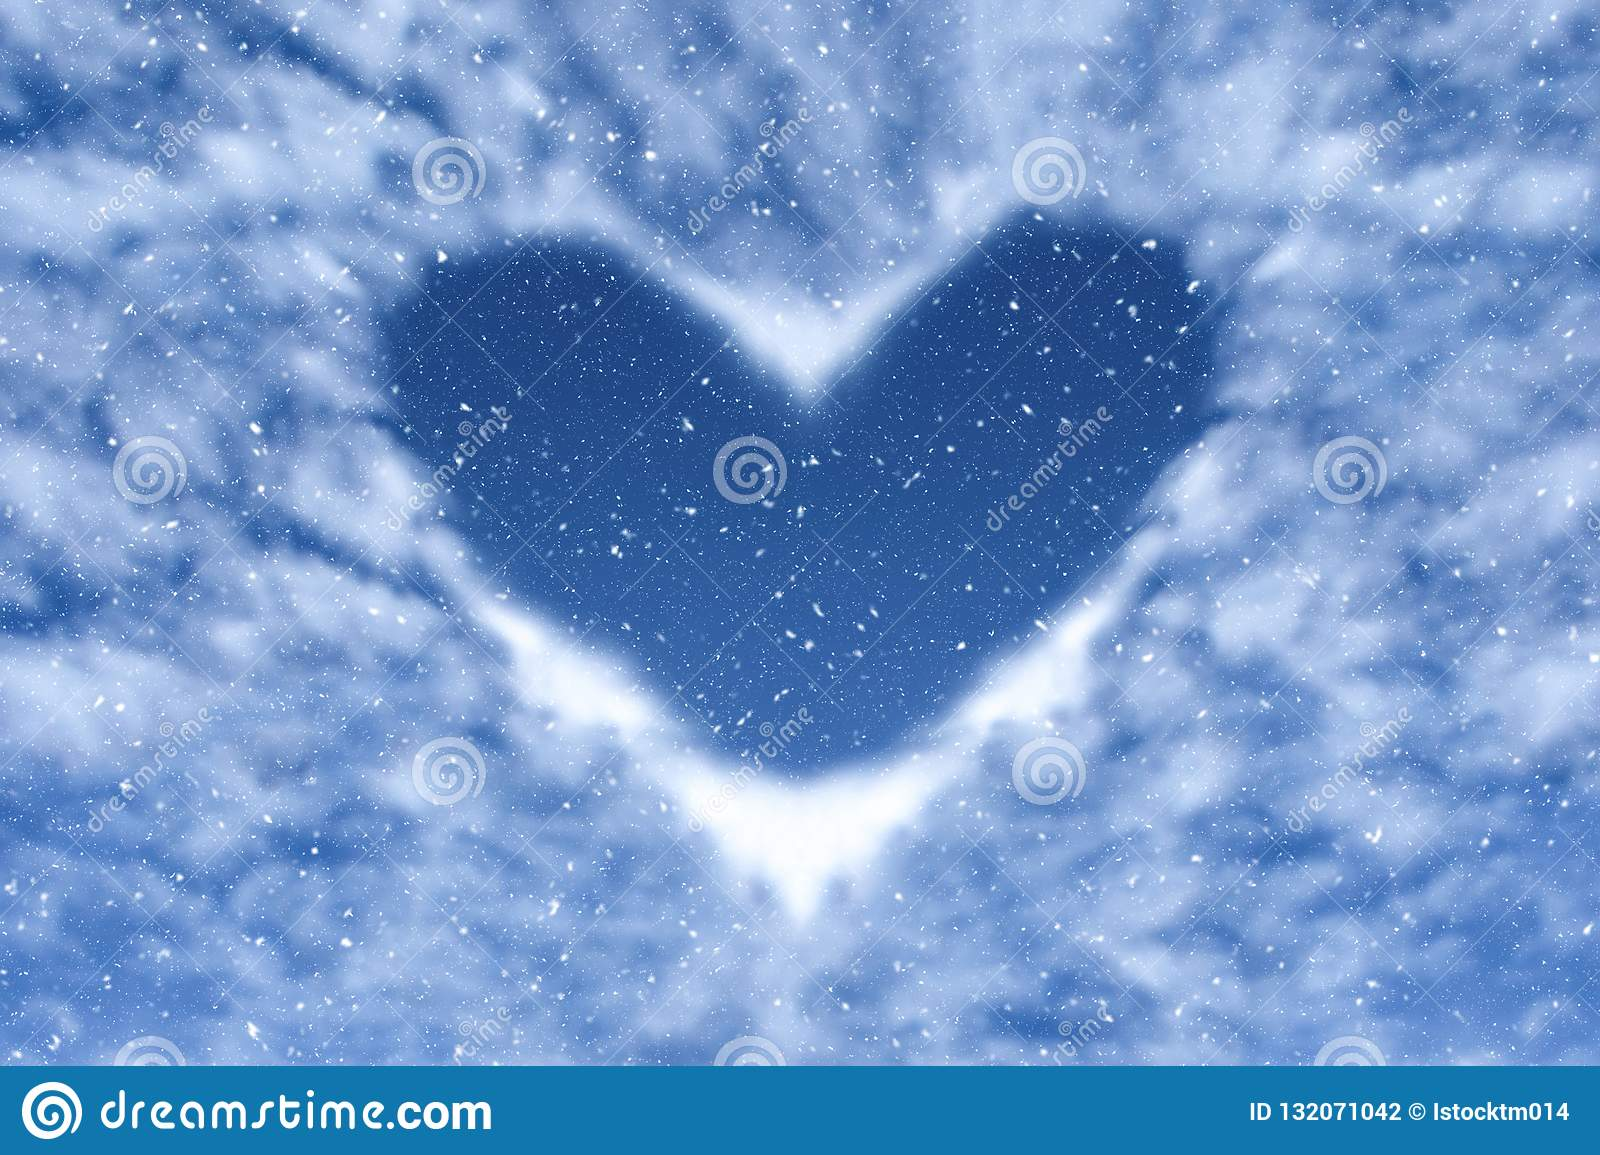 Blue sky with snow and clouds in heart shape. Happy and love background.